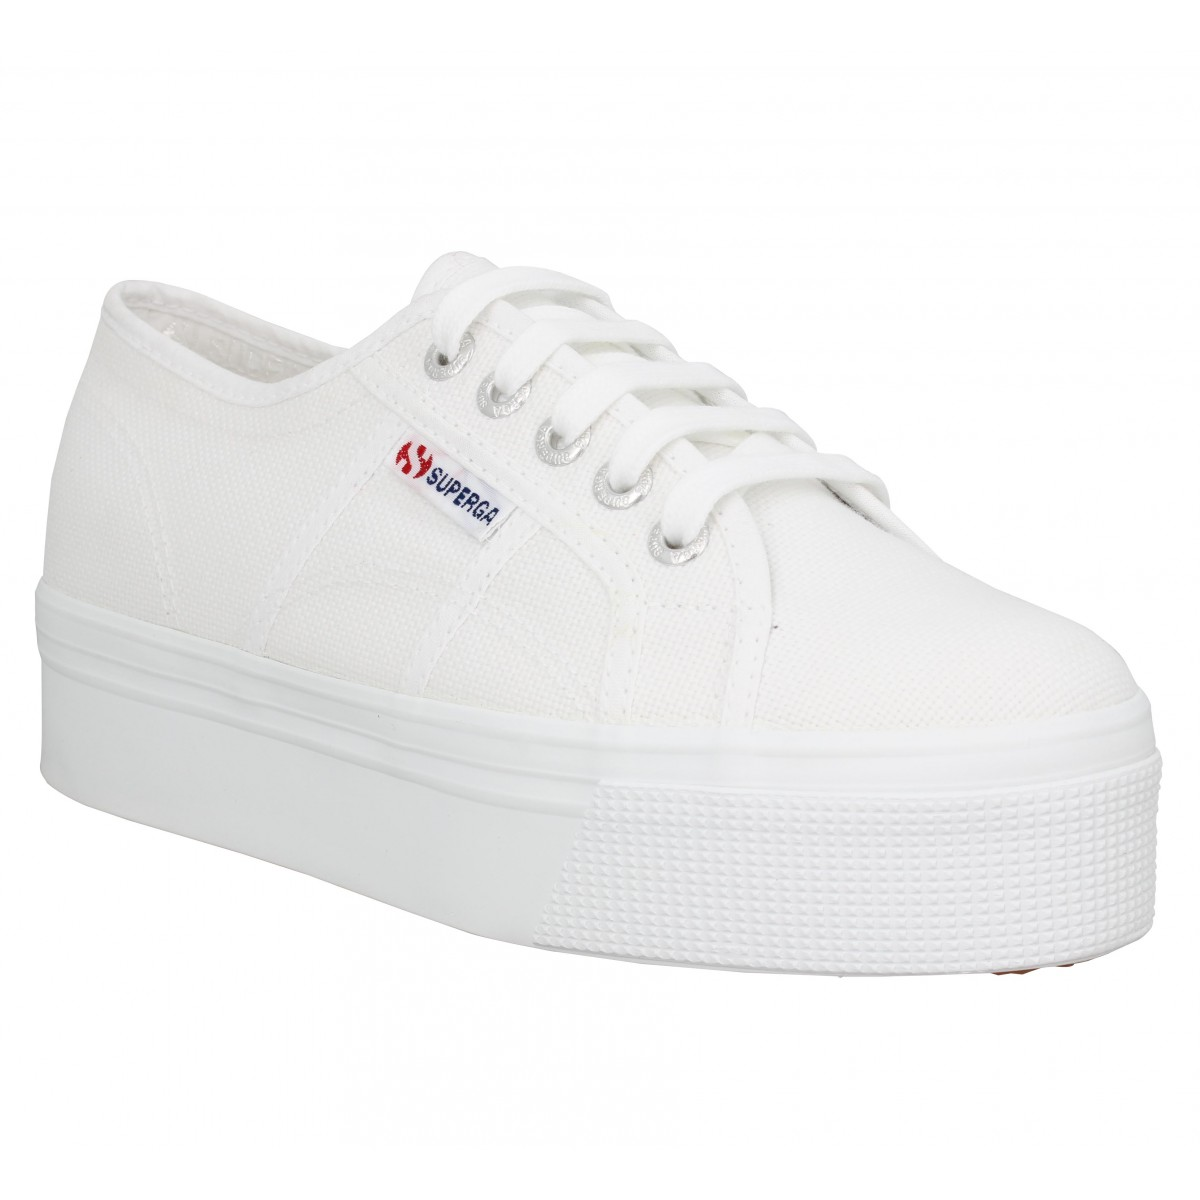 Baskets SUPERGA 2790 Linea Up And Down toile Femme Blanc